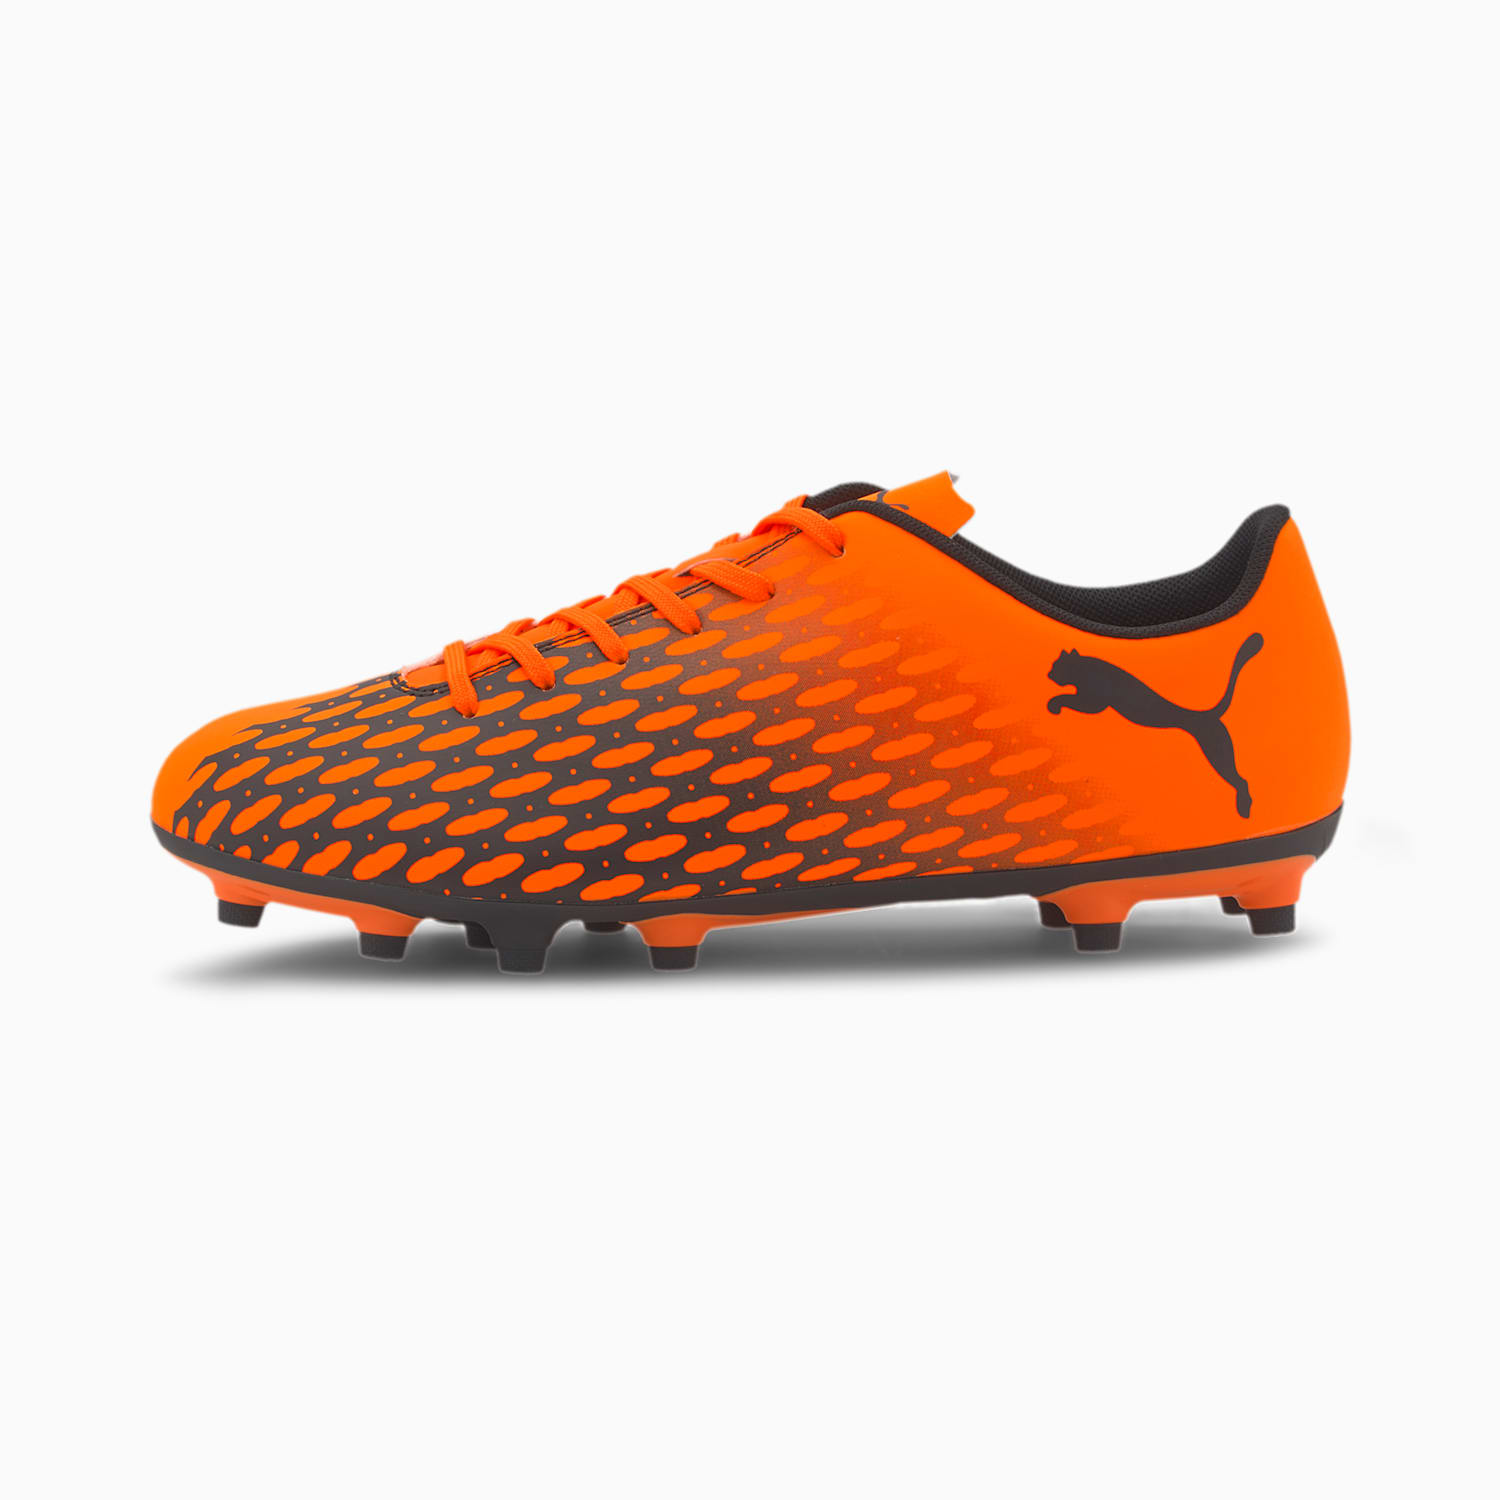 PUMA Spirit III FG Men's Soccer Cleats